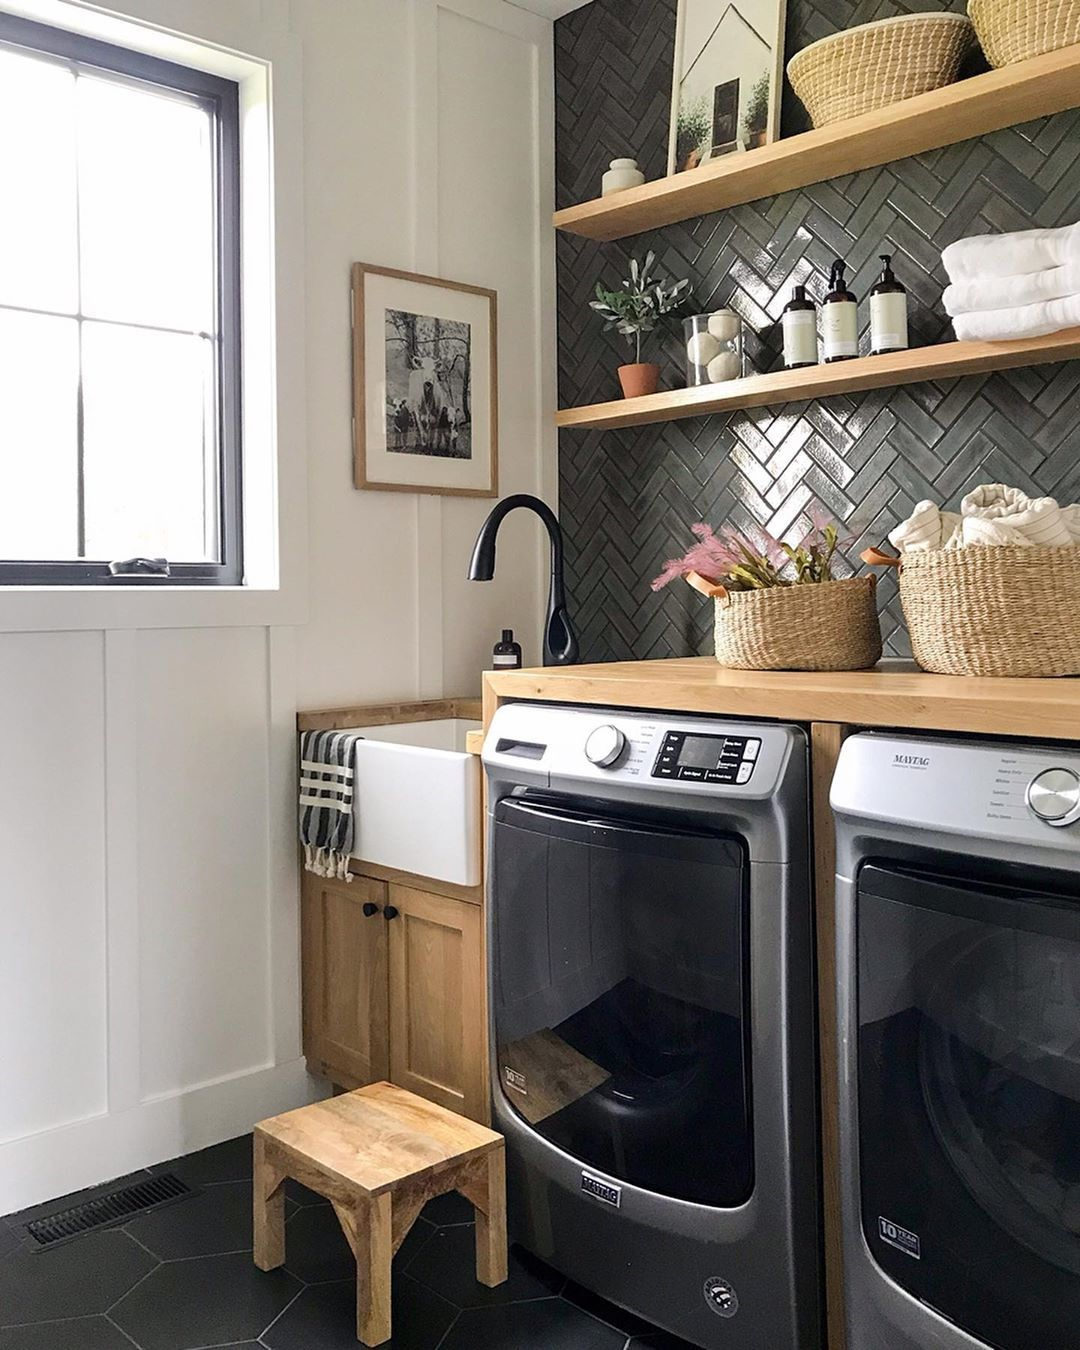 We'd look forward to every laundry day in a laundry room like this one 😍 (submitted by @joineryanddesignco) Link in bio to shop the room and get more laundry room inspo.